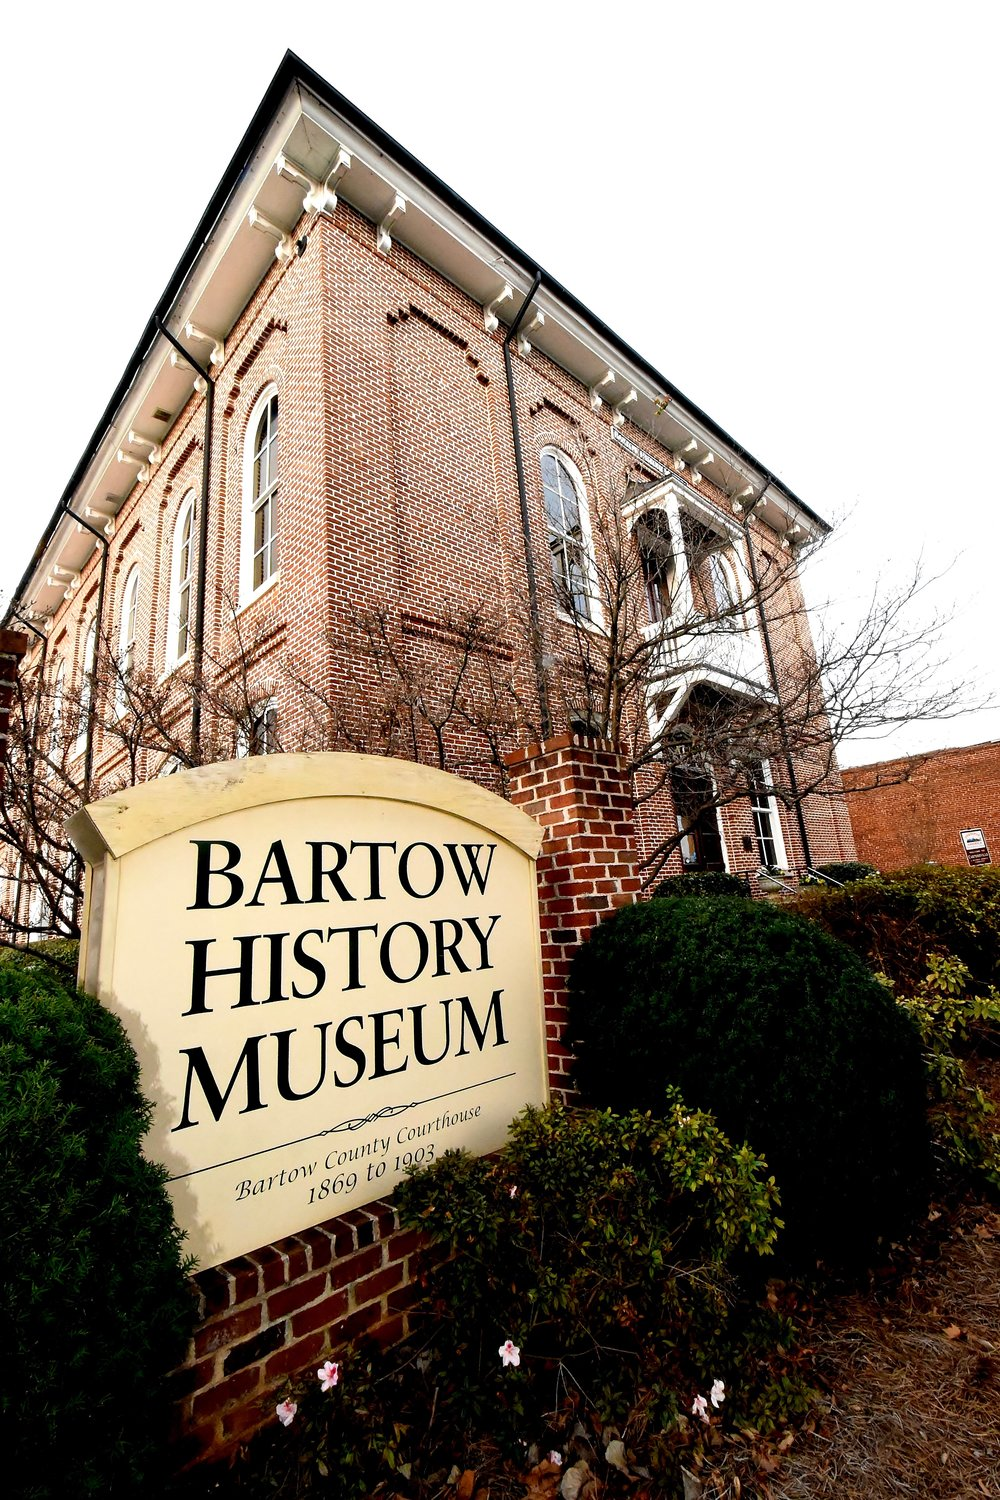 Now home to the Bartow History Museum, the 1869 Courthouse building is celebrating its 150th anniversary.